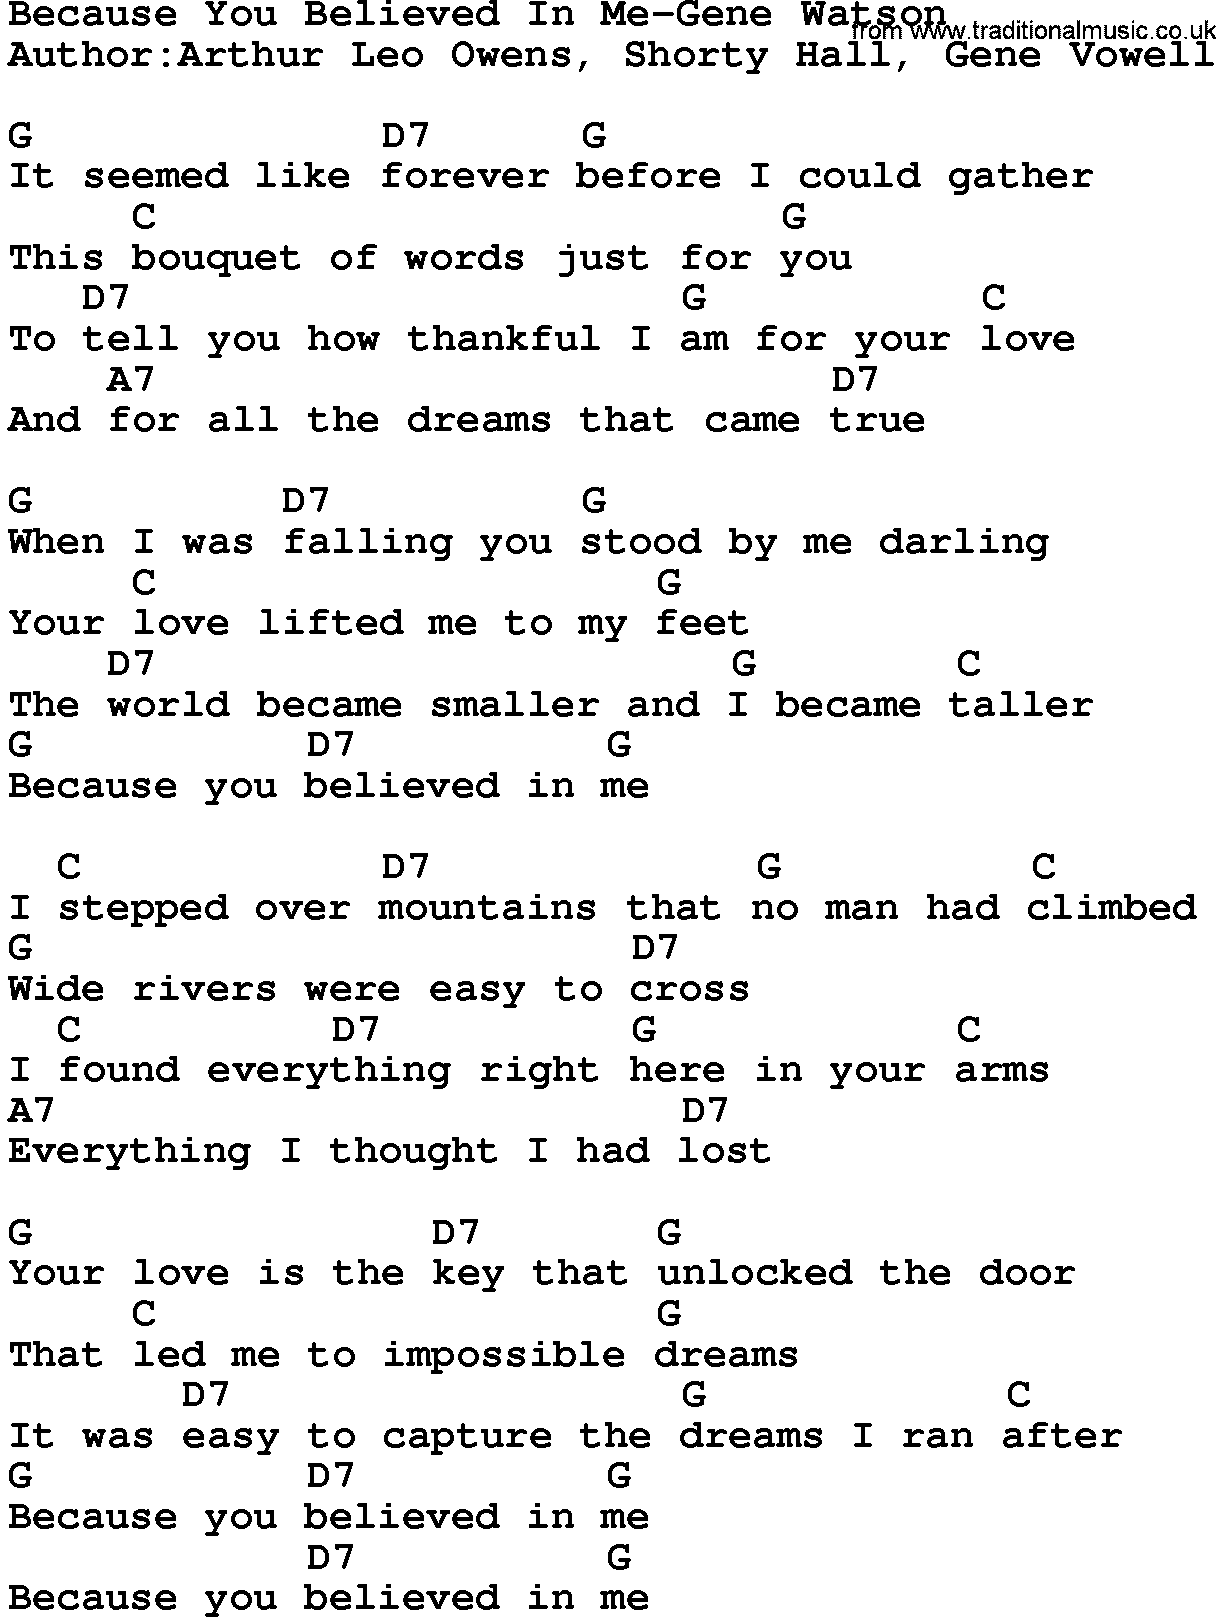 Country musicbecause you believed in me gene watson lyrics and chords hexwebz Images